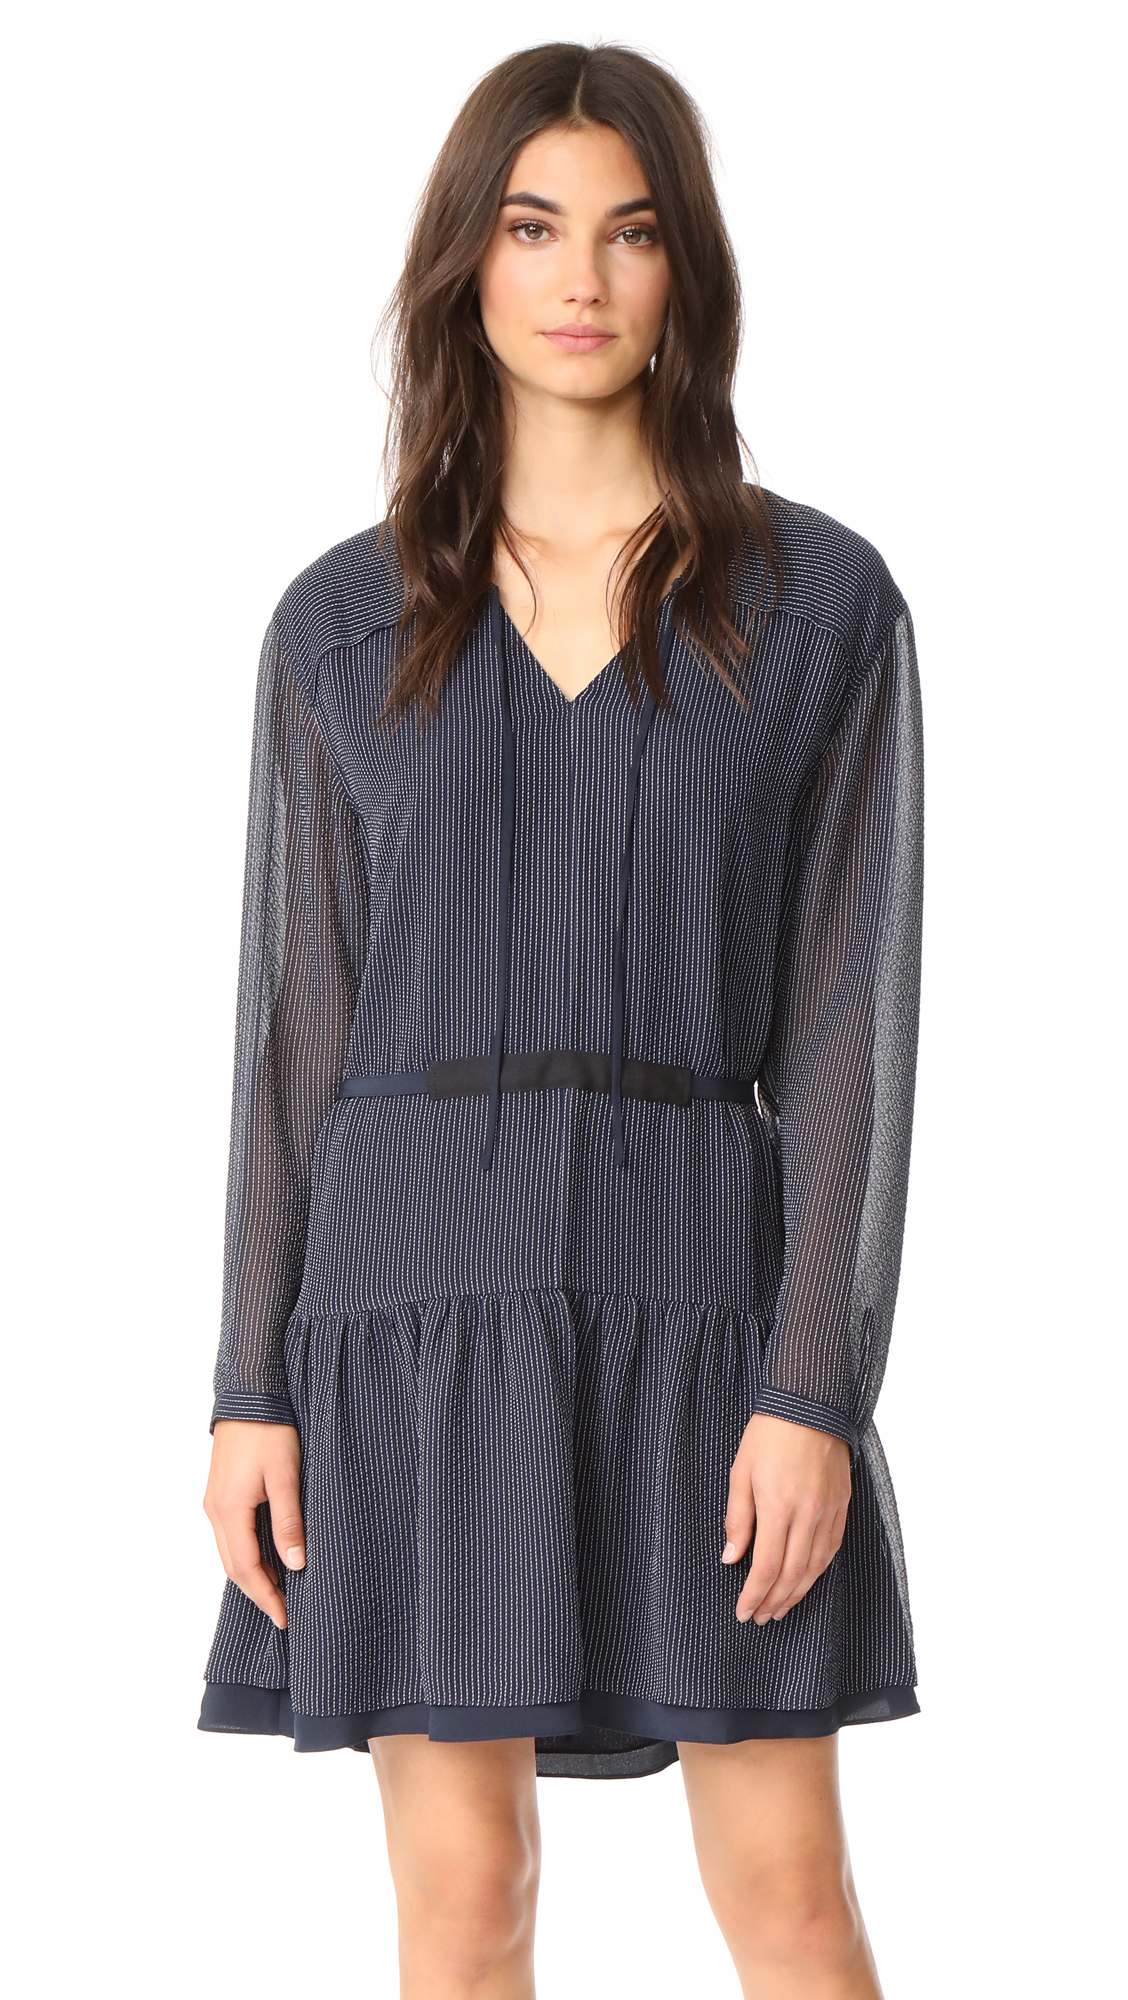 Rag & Bone Blake Long Sleeve Dress - Deep Sapphire